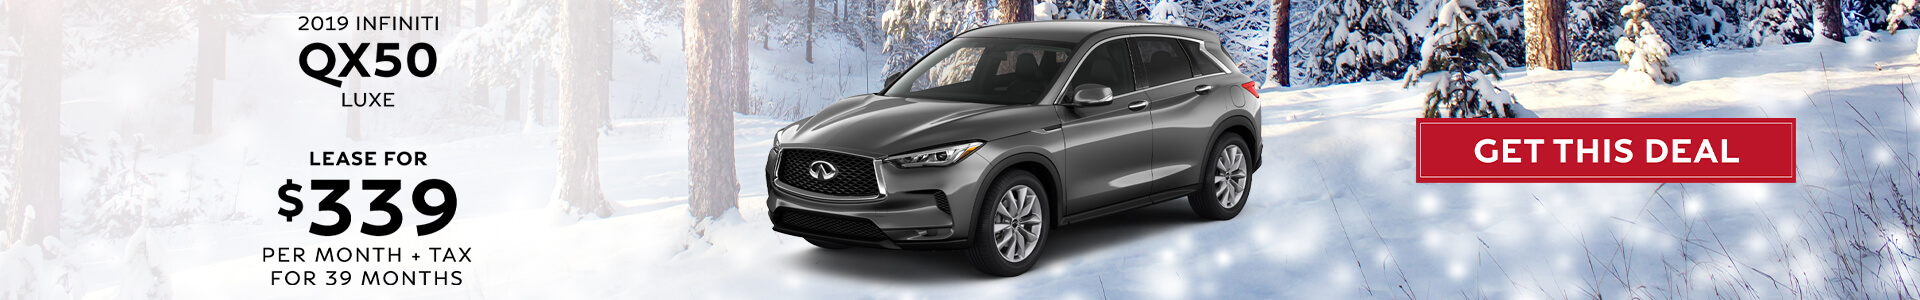 QX50 LUXE - Lease for $339